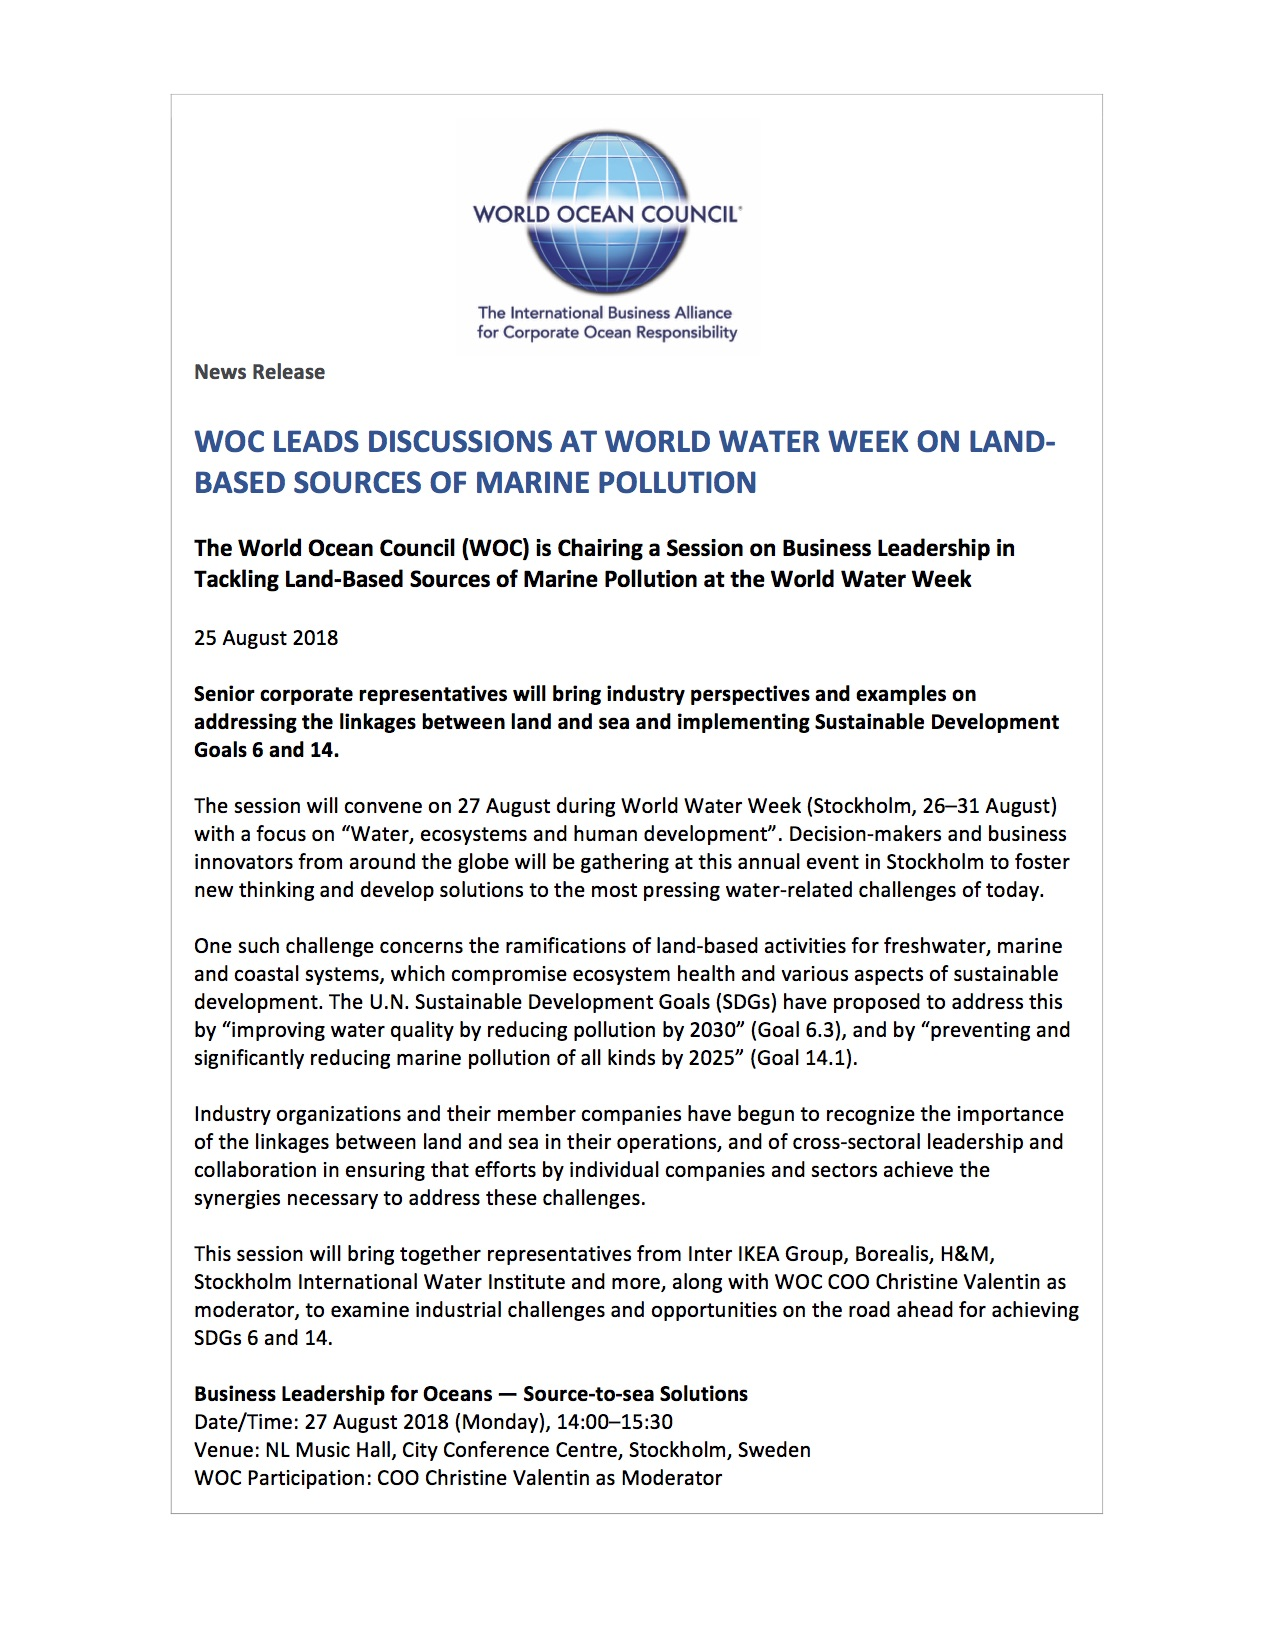 WOC Leads Discussions at World Water Week on Land-based Sources of Marine Pollution - 25 August 2018